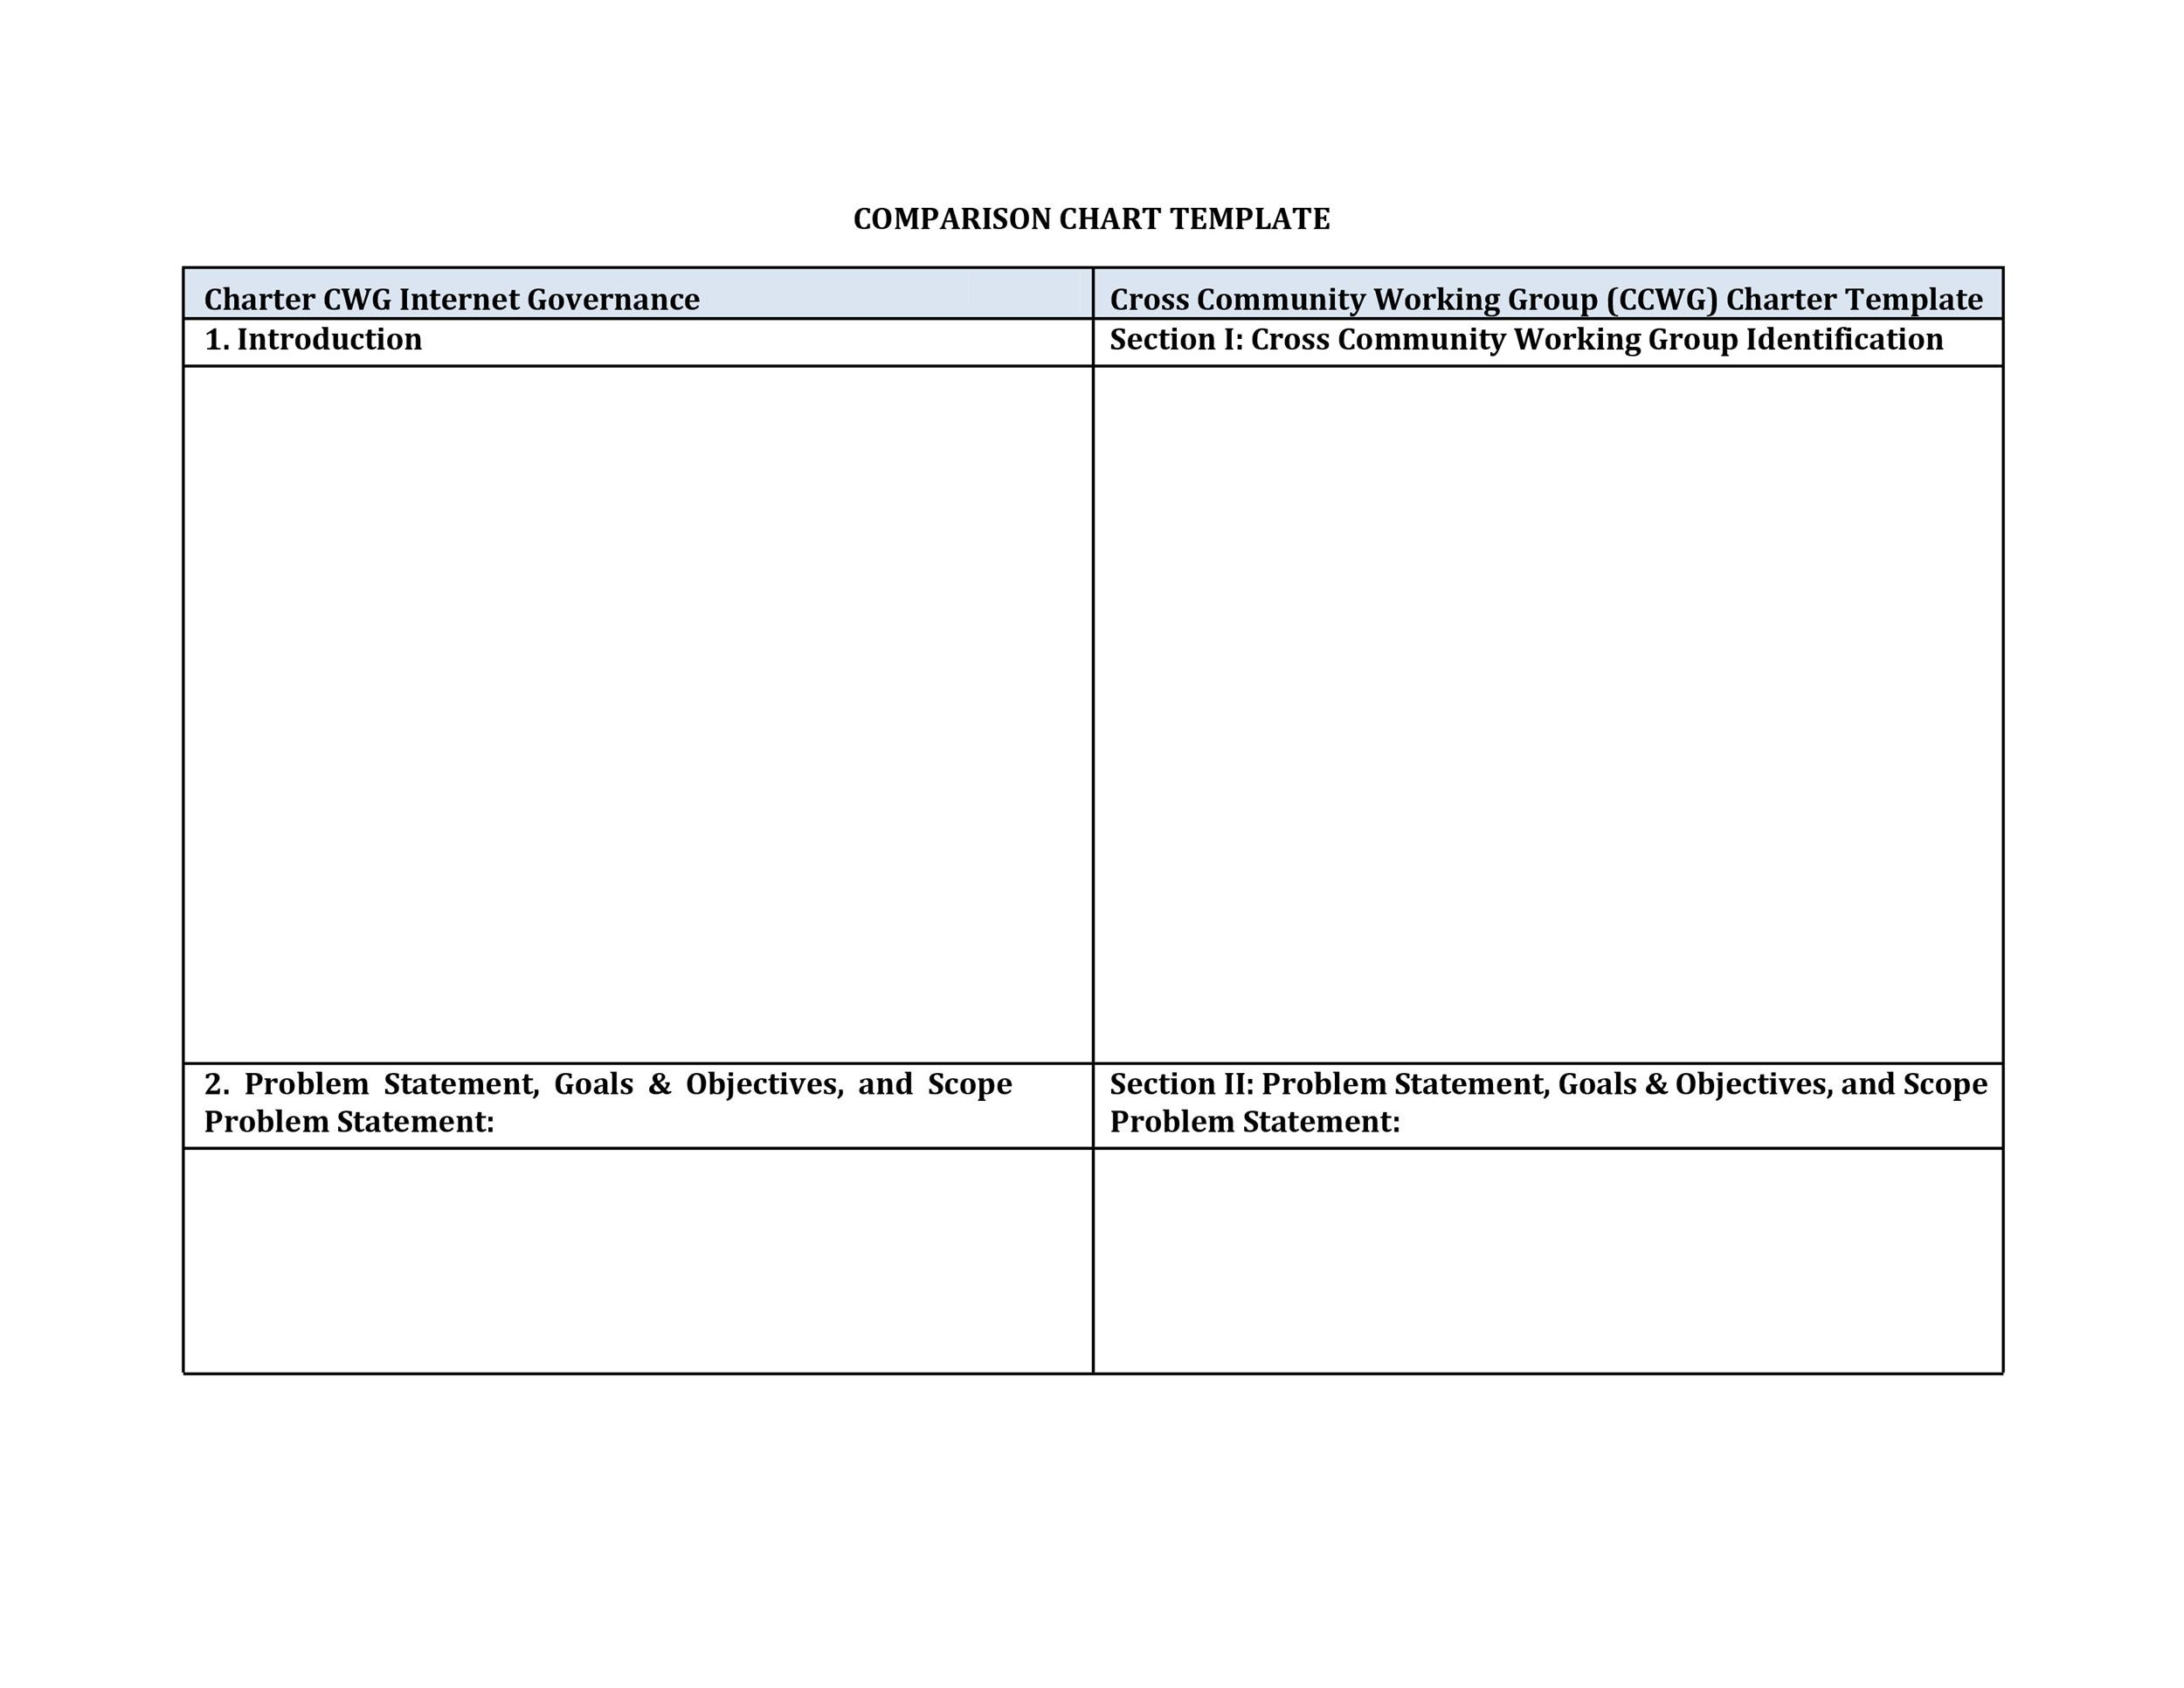 40 Great Comparison Chart Templates for ANY Situation ᐅ Template Lab